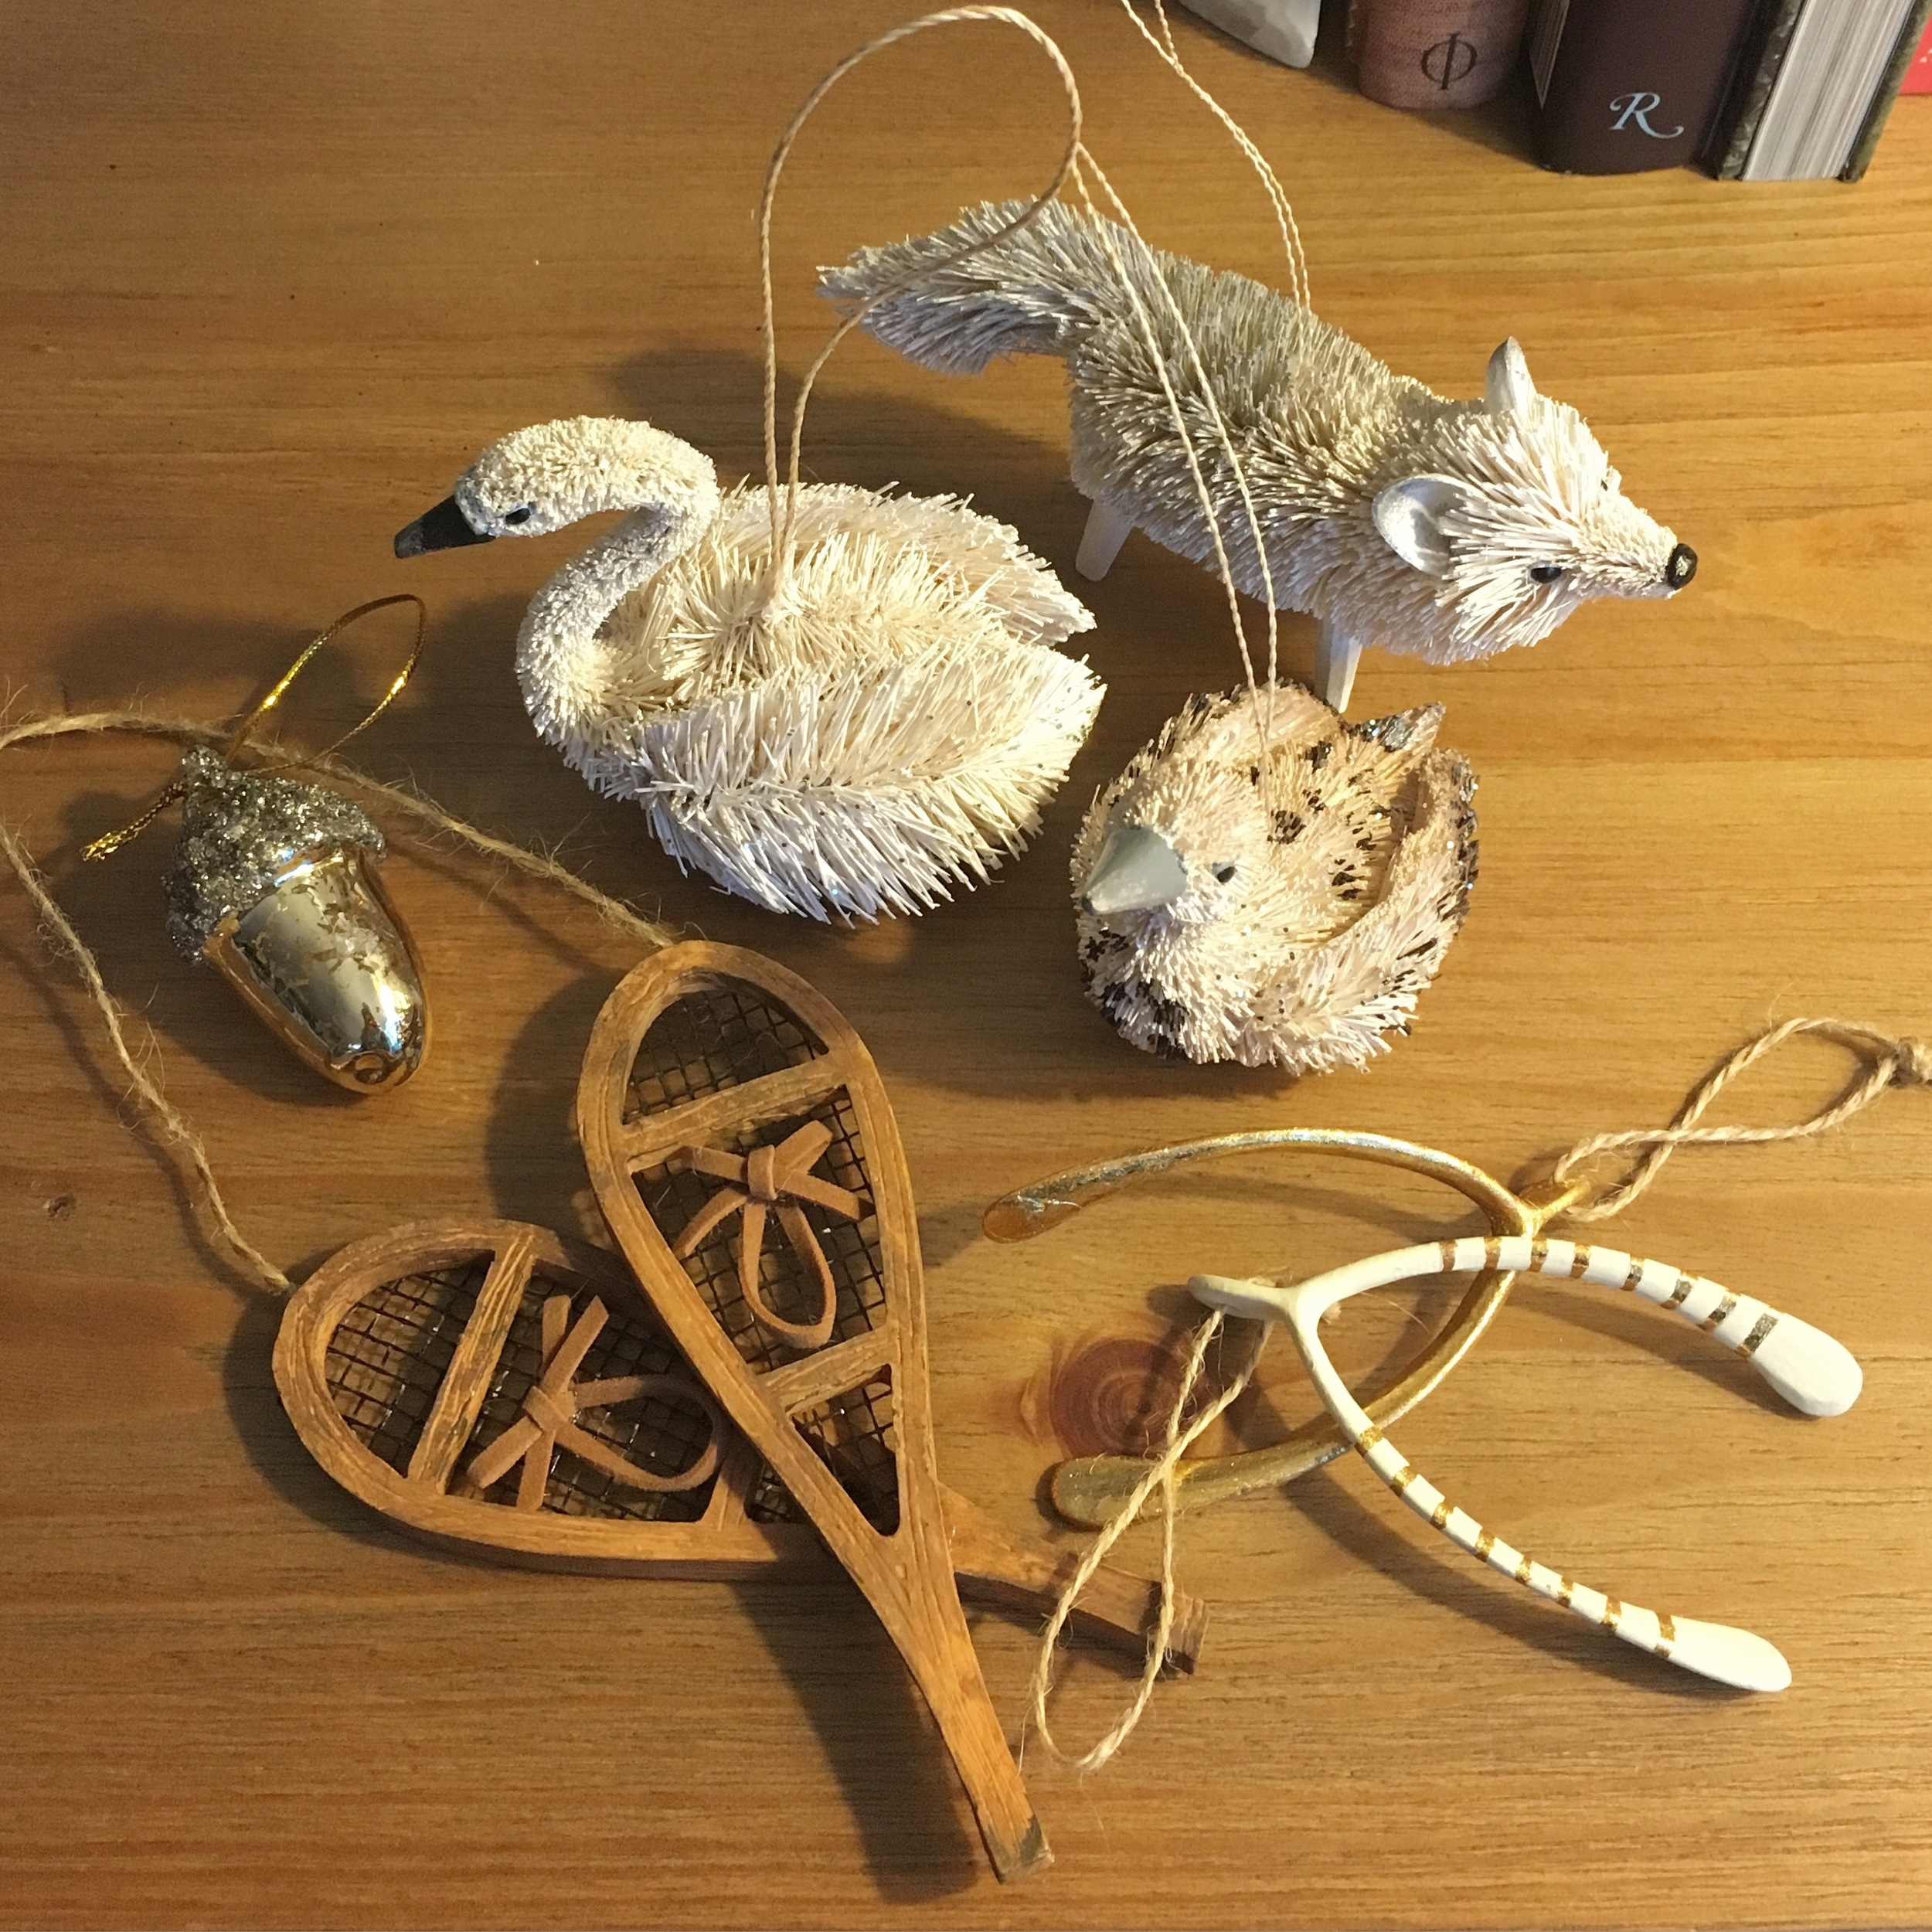 A collection of rustic ornaments for the tree...